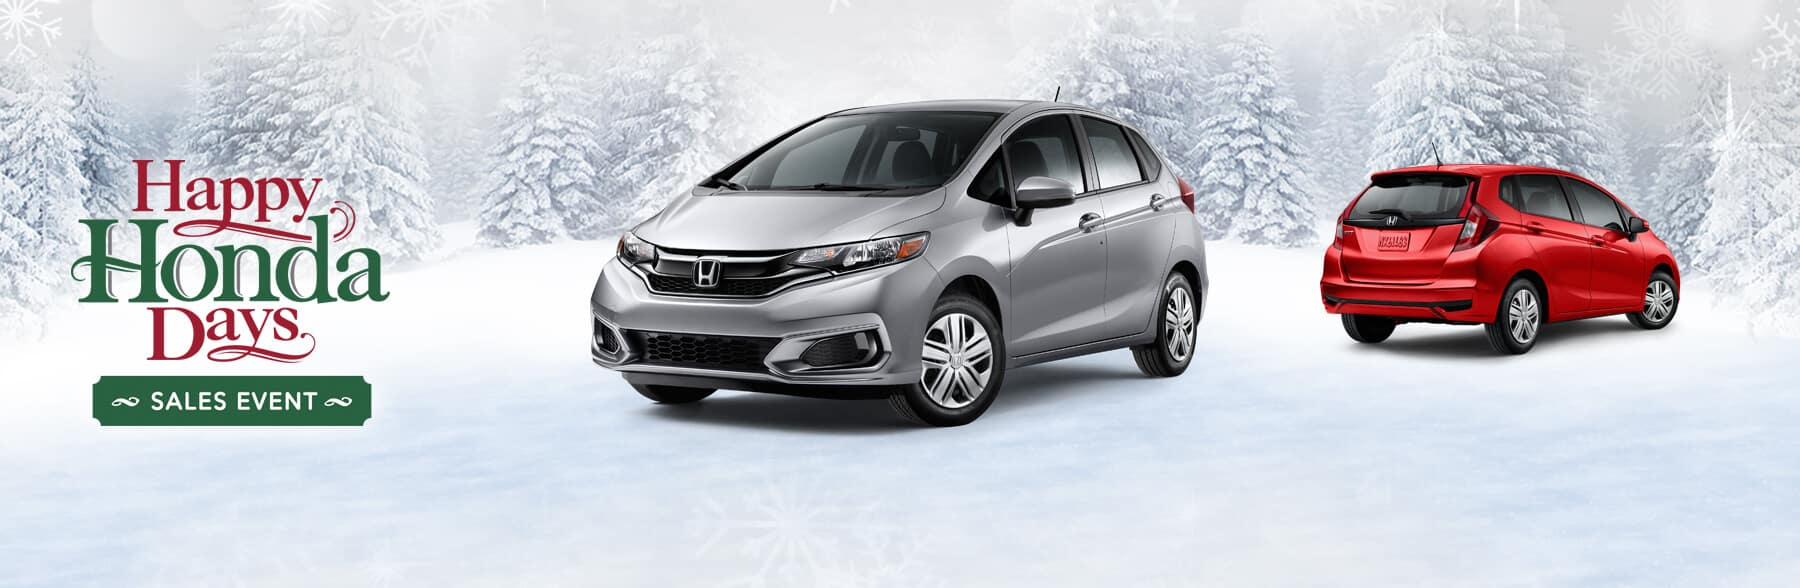 Happy Honda Days Fit Banner